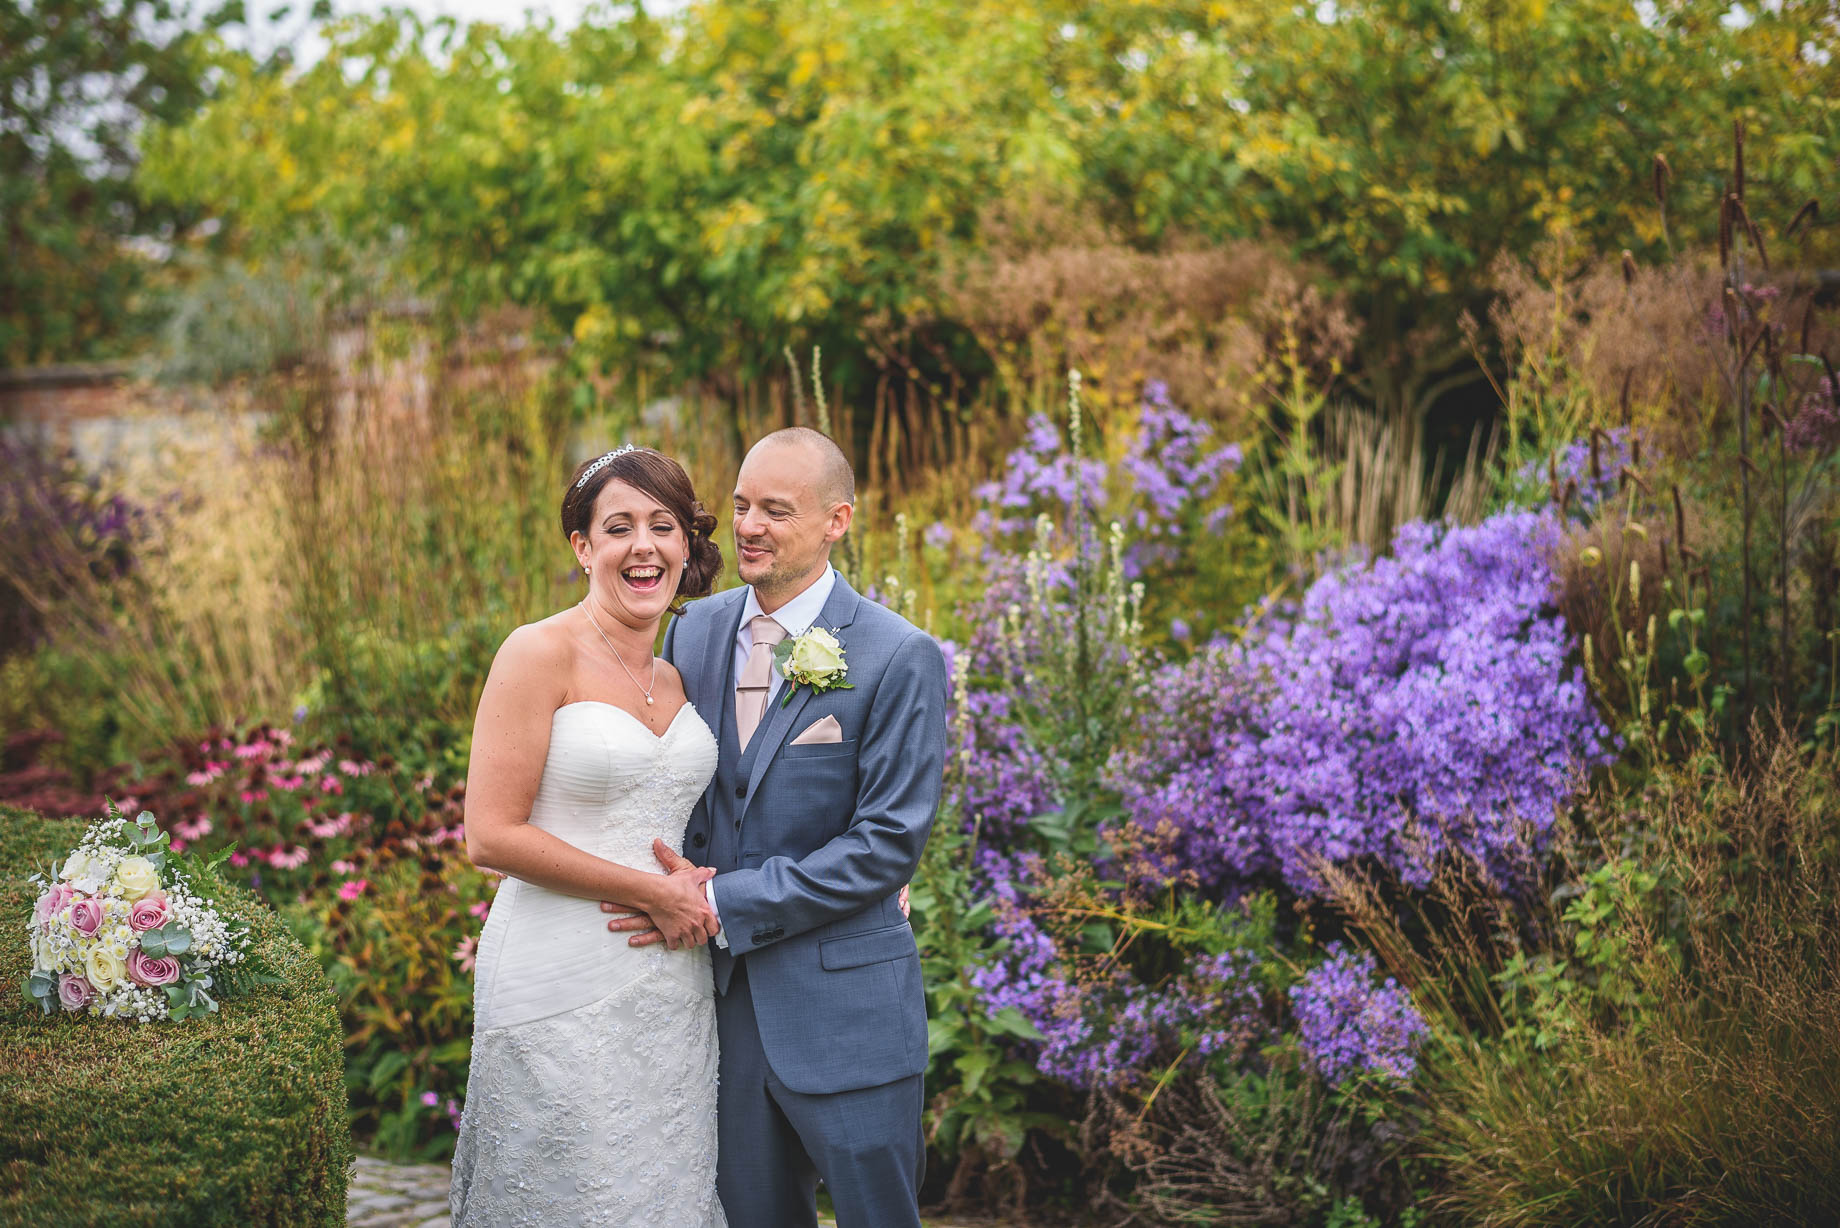 Bury Court Barn wedding photography - Guy Collier Photography - Karen and John (94 of 166)